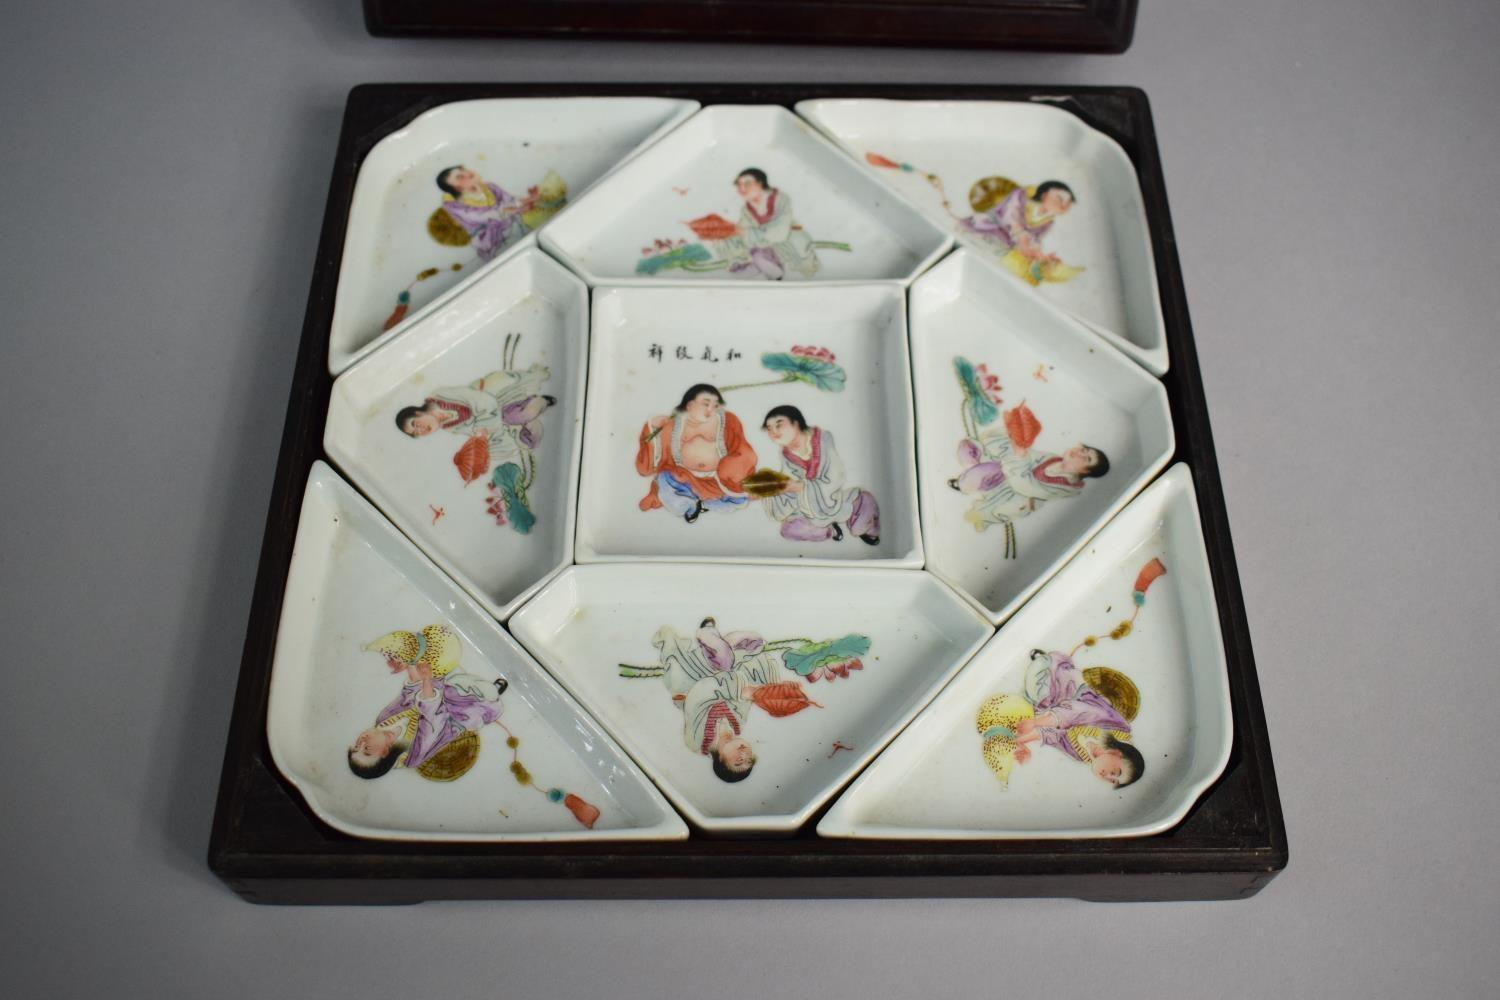 Lot 421 - A Mid 20th Century Chinese Republic Ceramic Hors D'oeuvres Set, In Wooden Box with Glazed Top Panel.